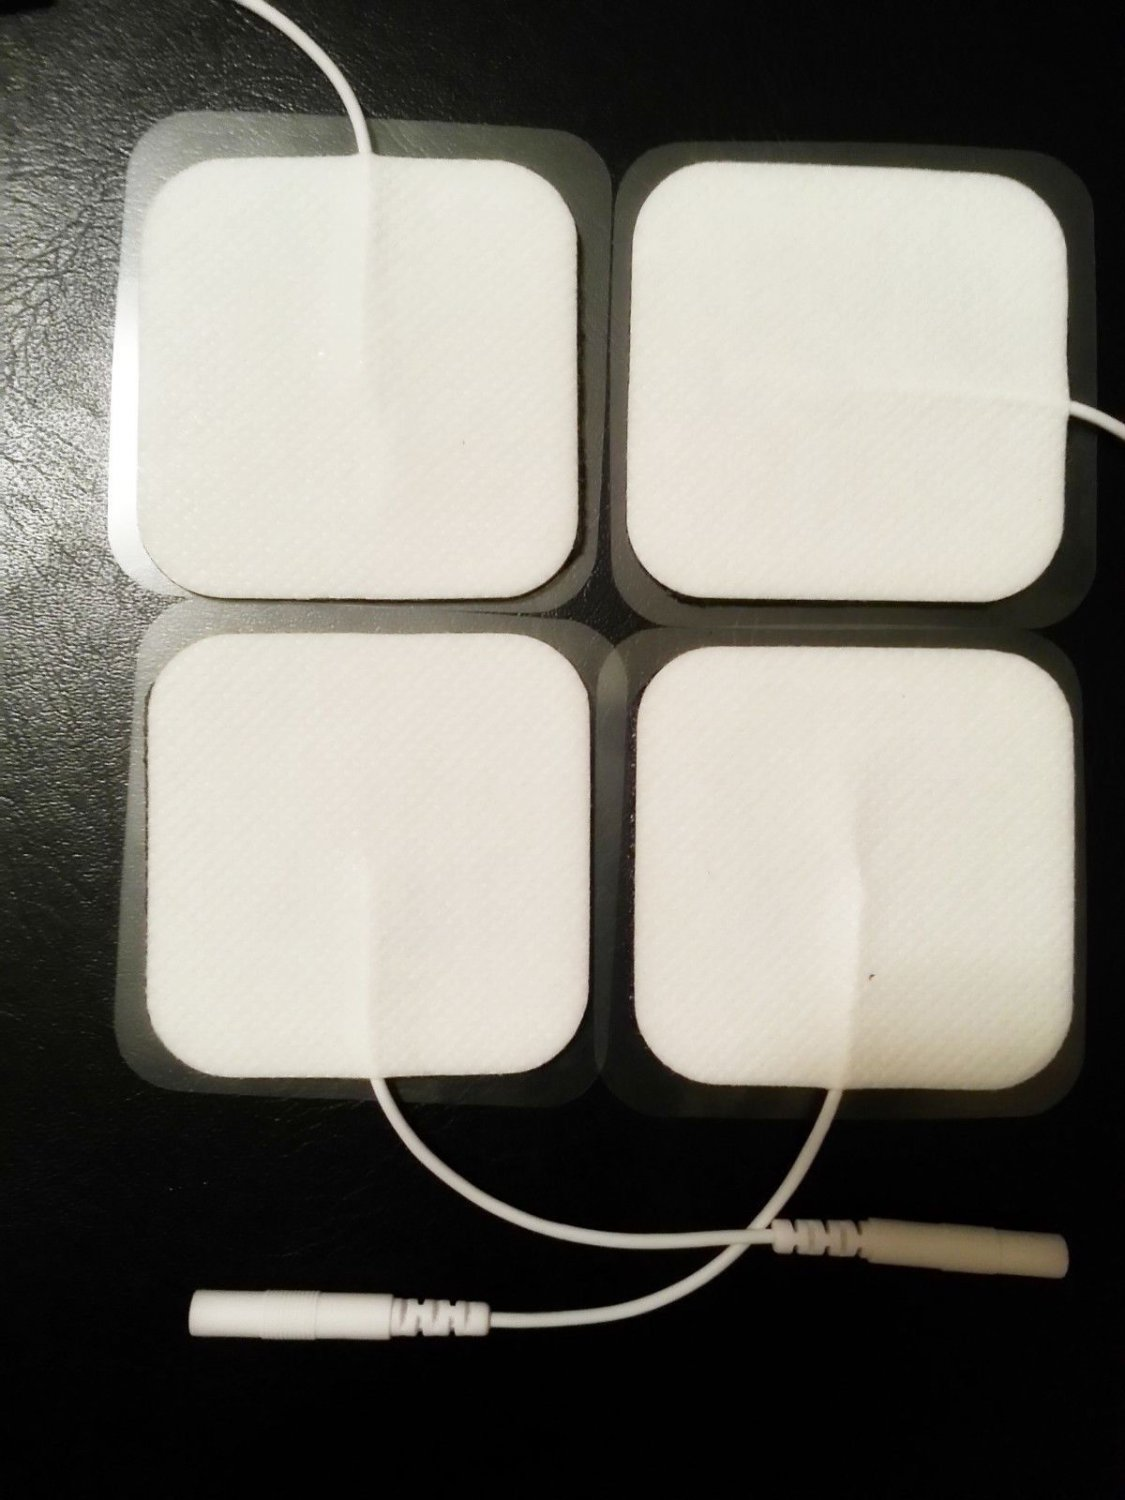 8 pc Square Replacement Electrode Massage Pads for RS-TENS PLUS Nerve Stimulator